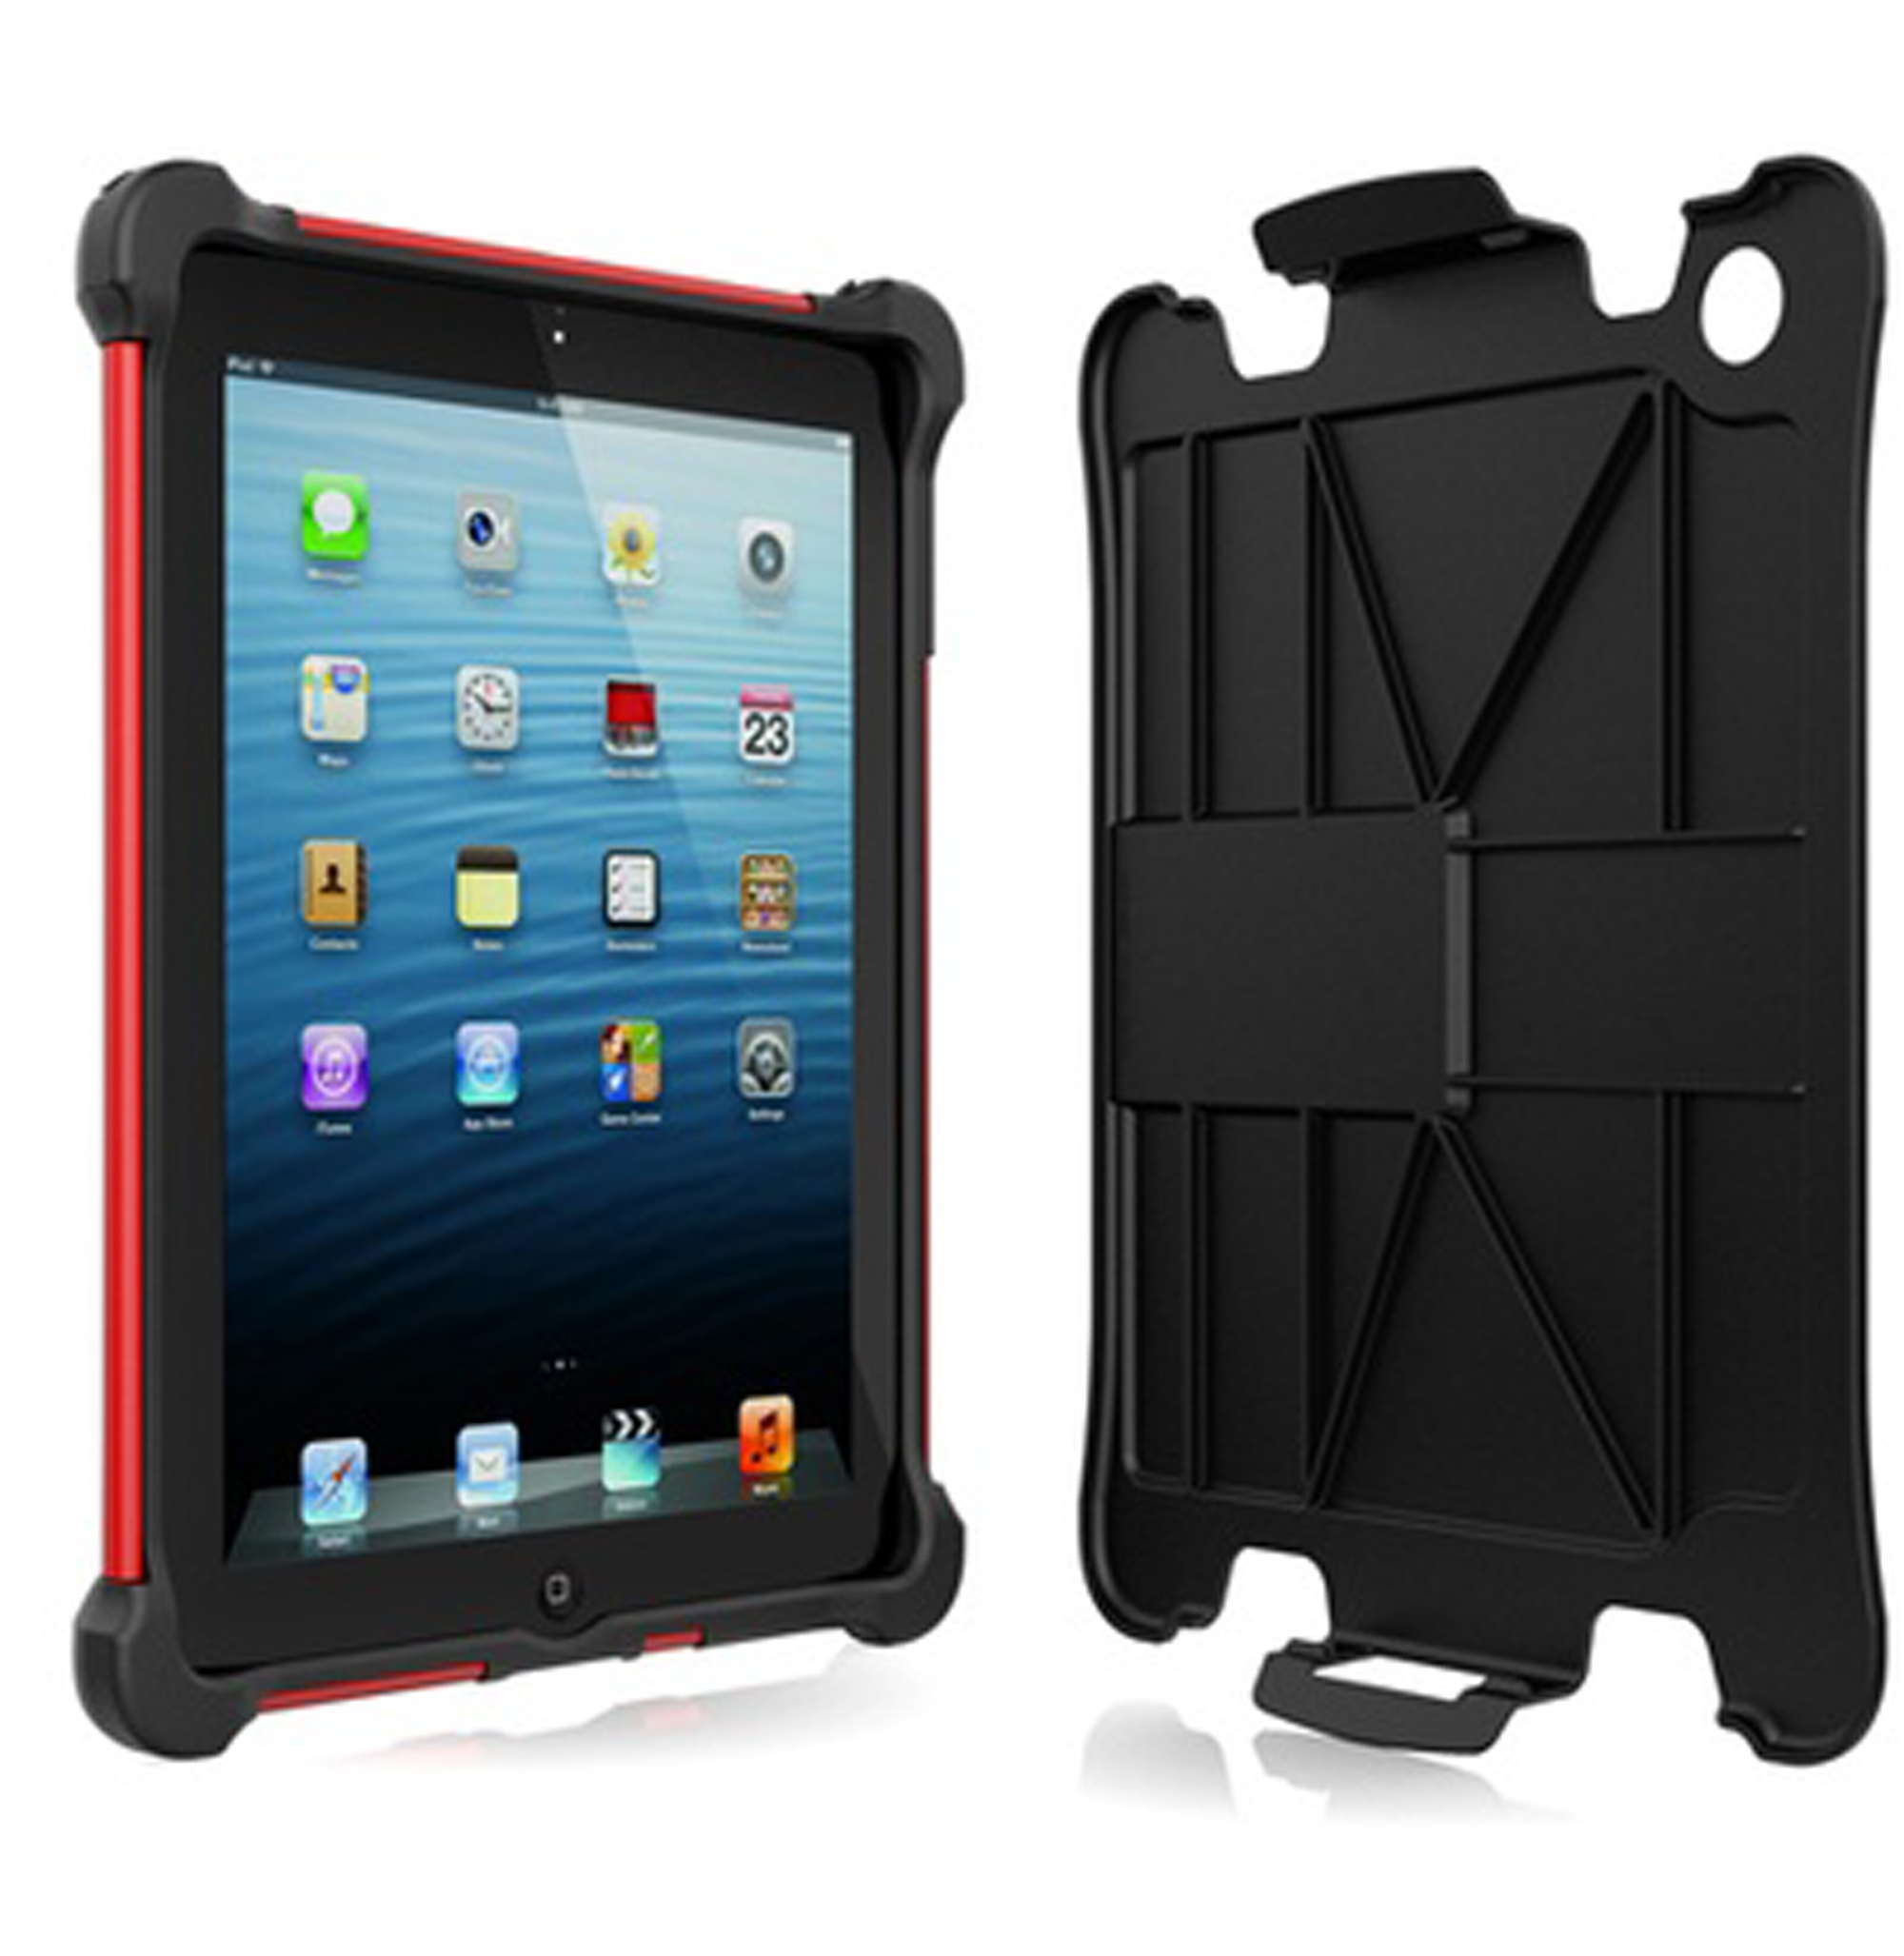 Apple iPad 2, iPad 3, iPad 4th GEN Black/Red Ballistic Tough Jacket Case